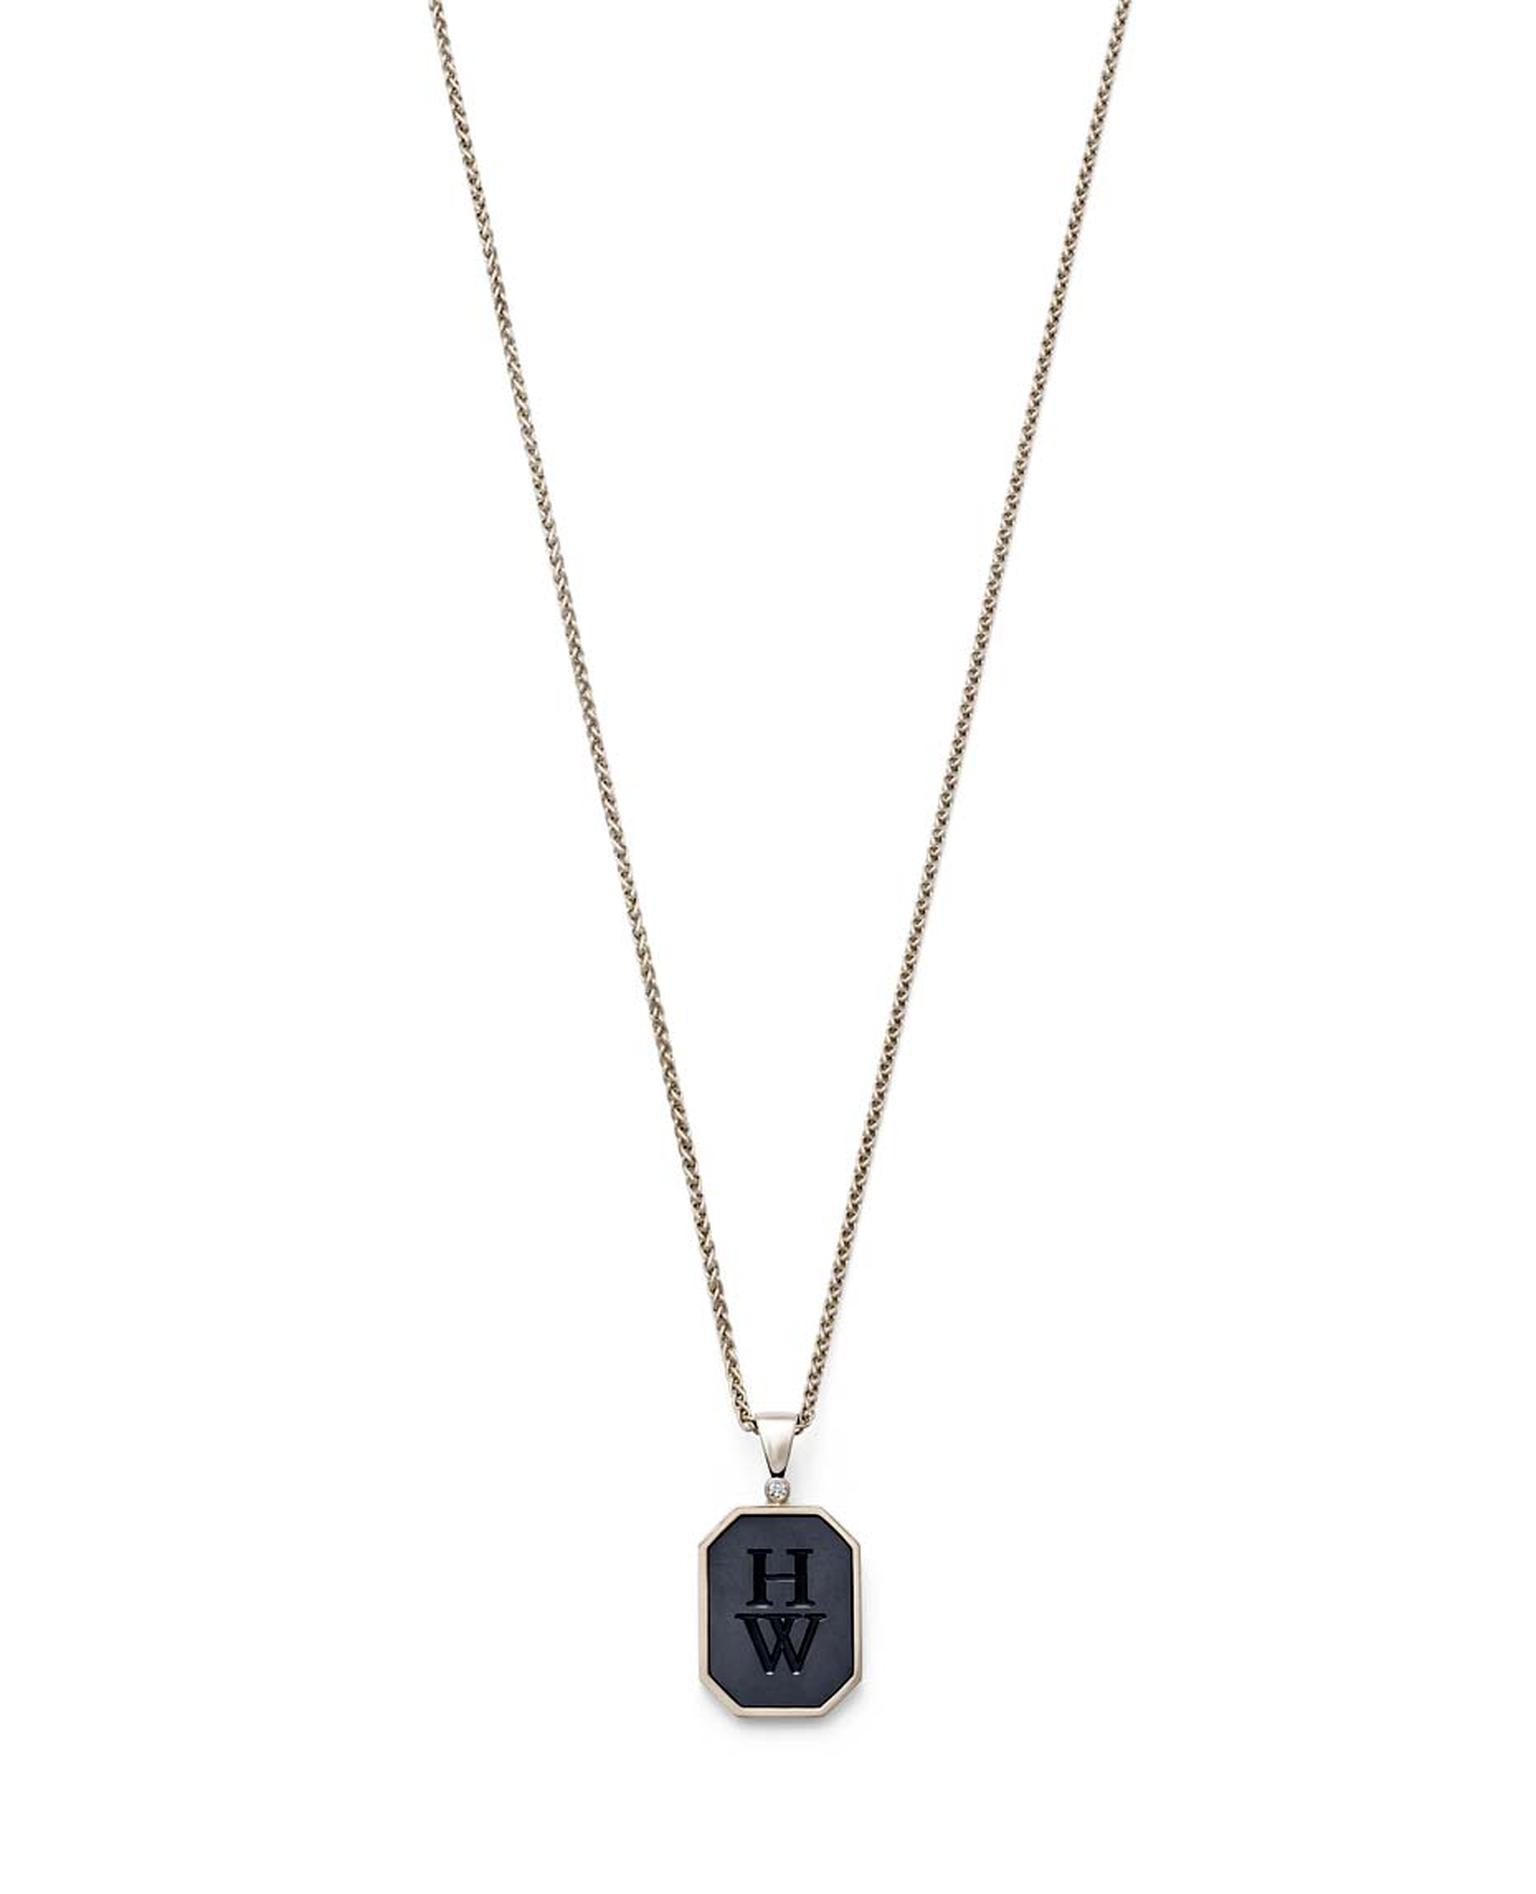 Harry Winston Zalium Collection pendant featuring the high-tech zirconium-based alloy.